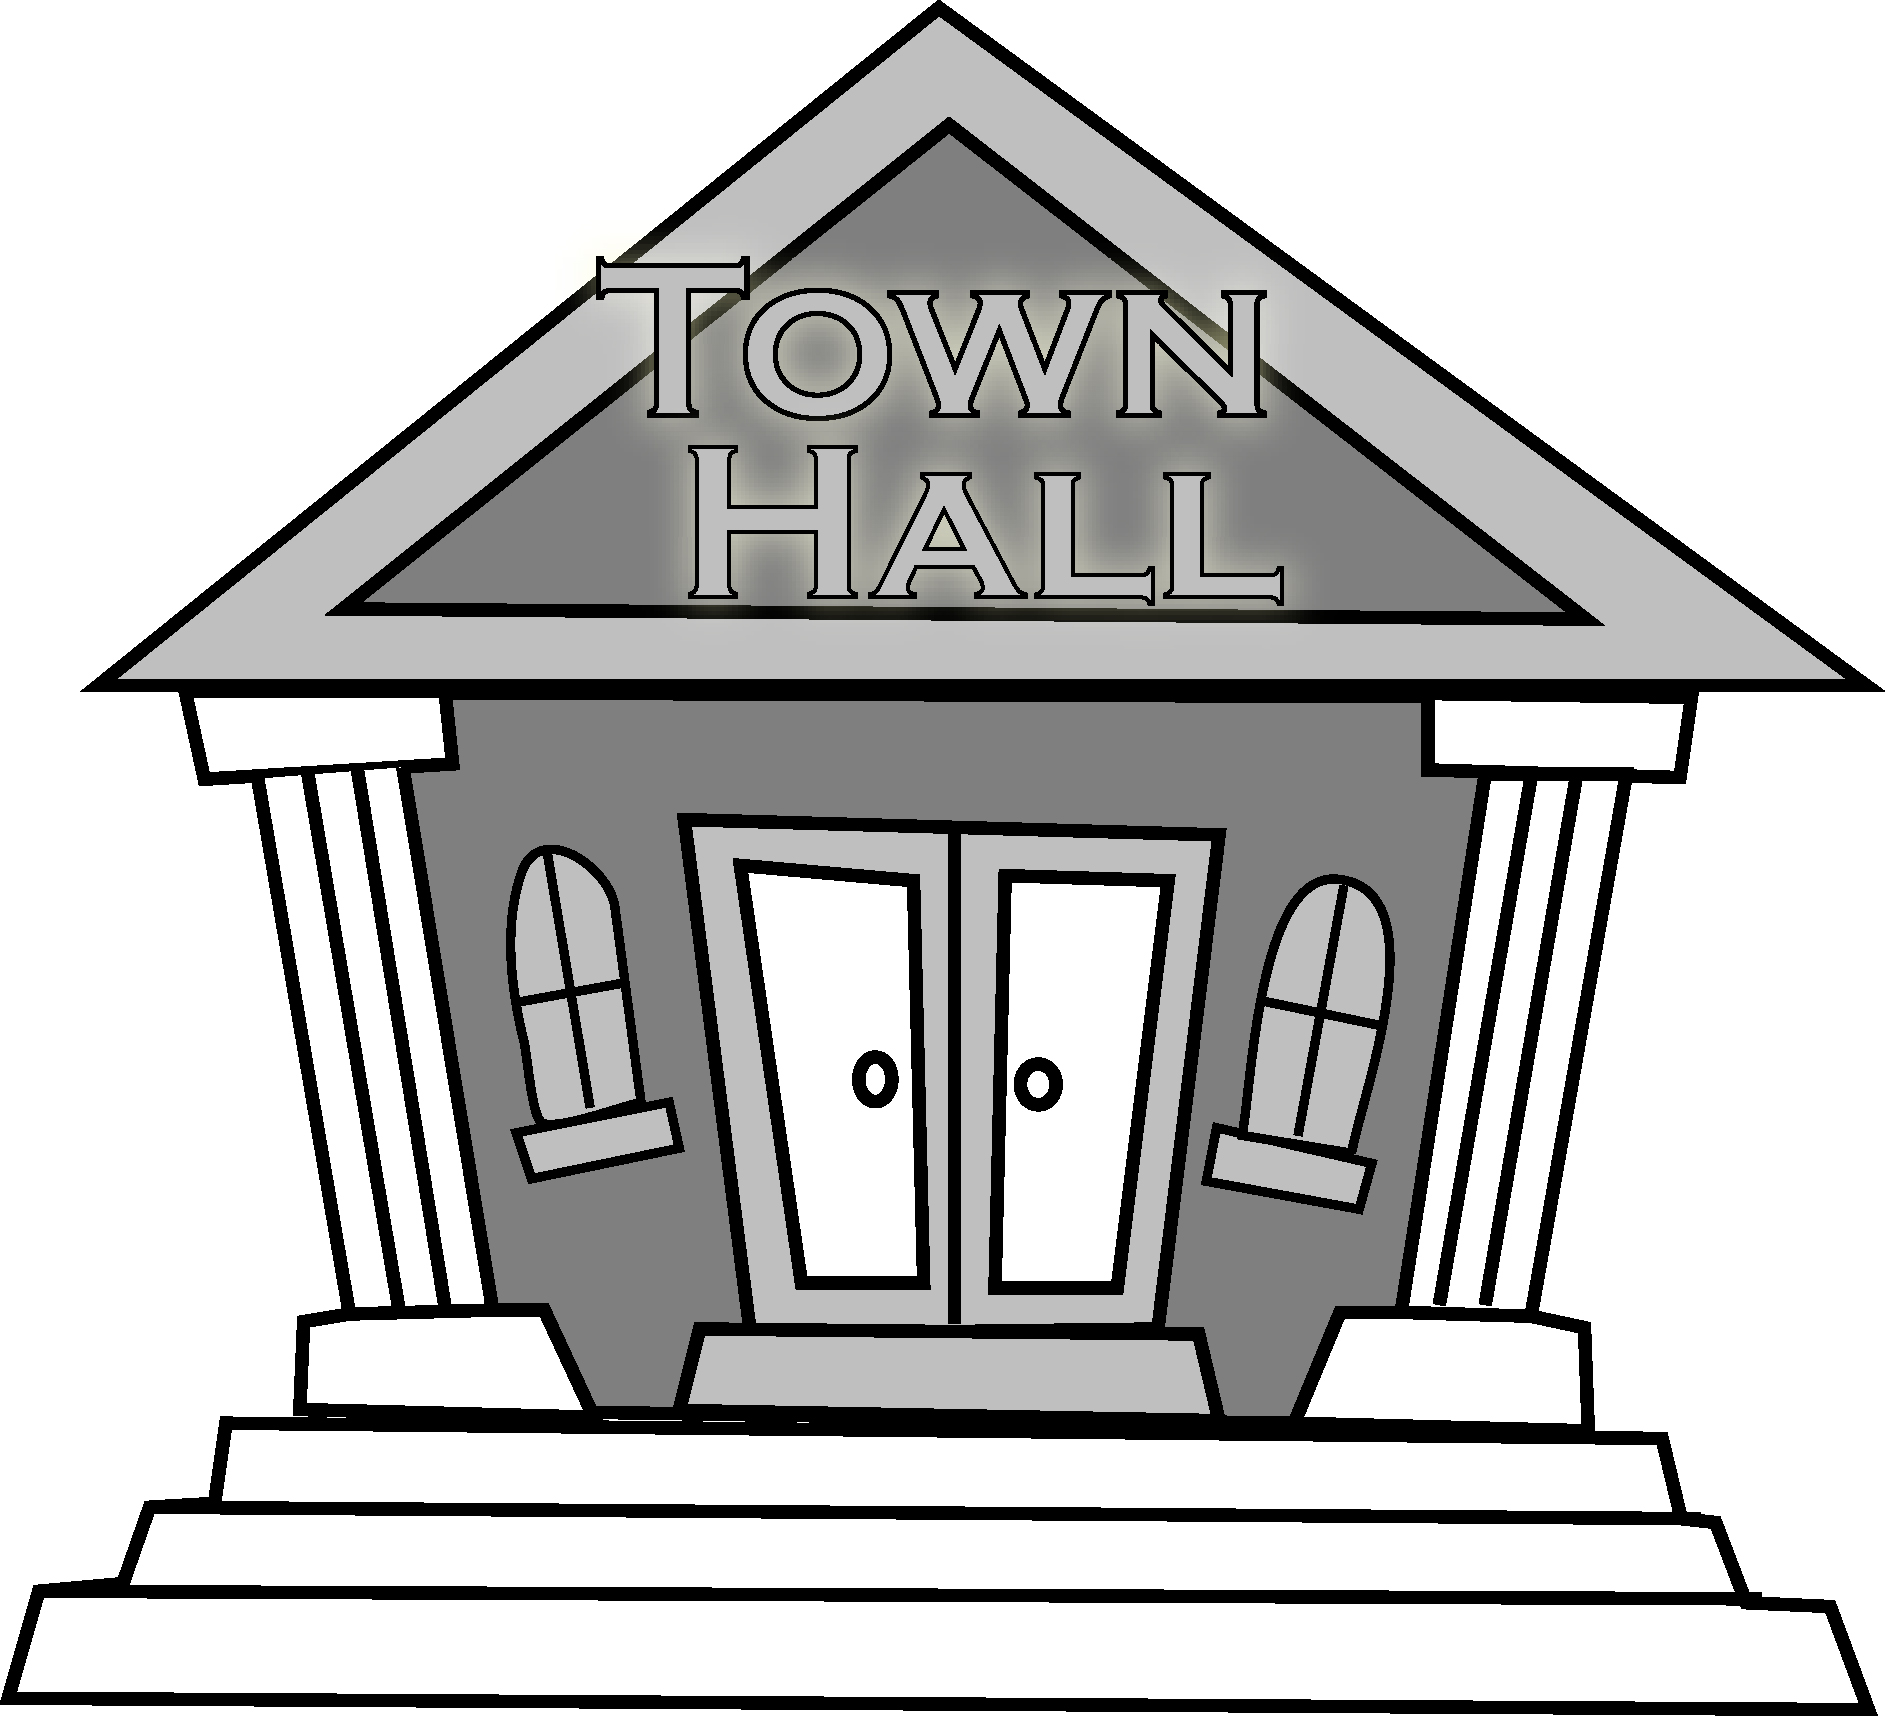 Office com clipart town council freeuse Free Town Cliparts, Download Free Clip Art, Free Clip Art on ... freeuse